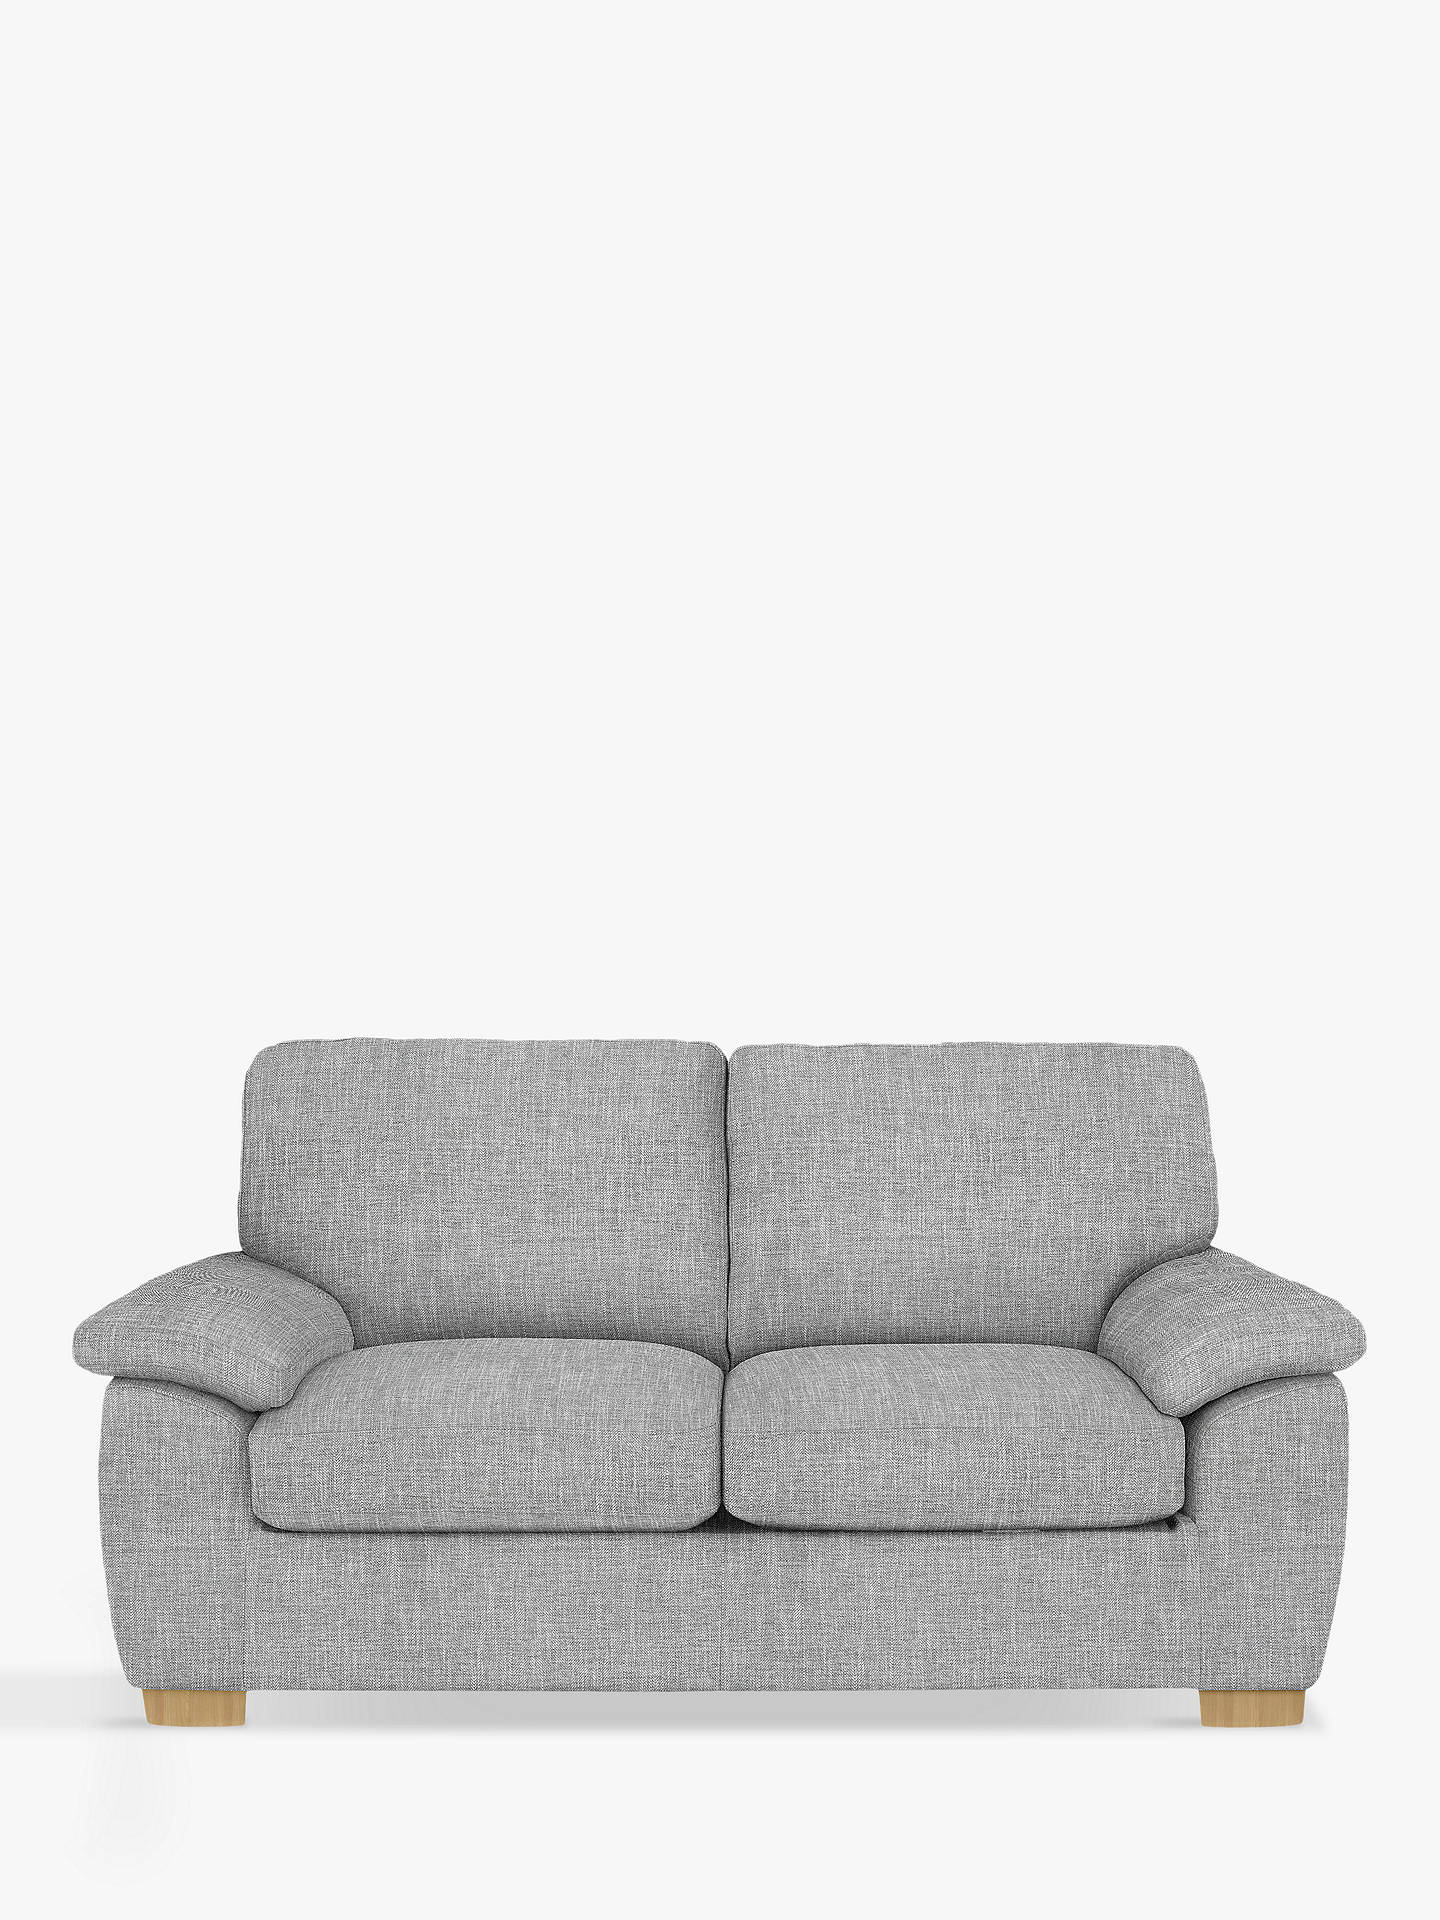 BuyJohn Lewis U0026 Partners Camden Medium 2 Seater Sofa, Light Leg, Arden Blue  Grey ...